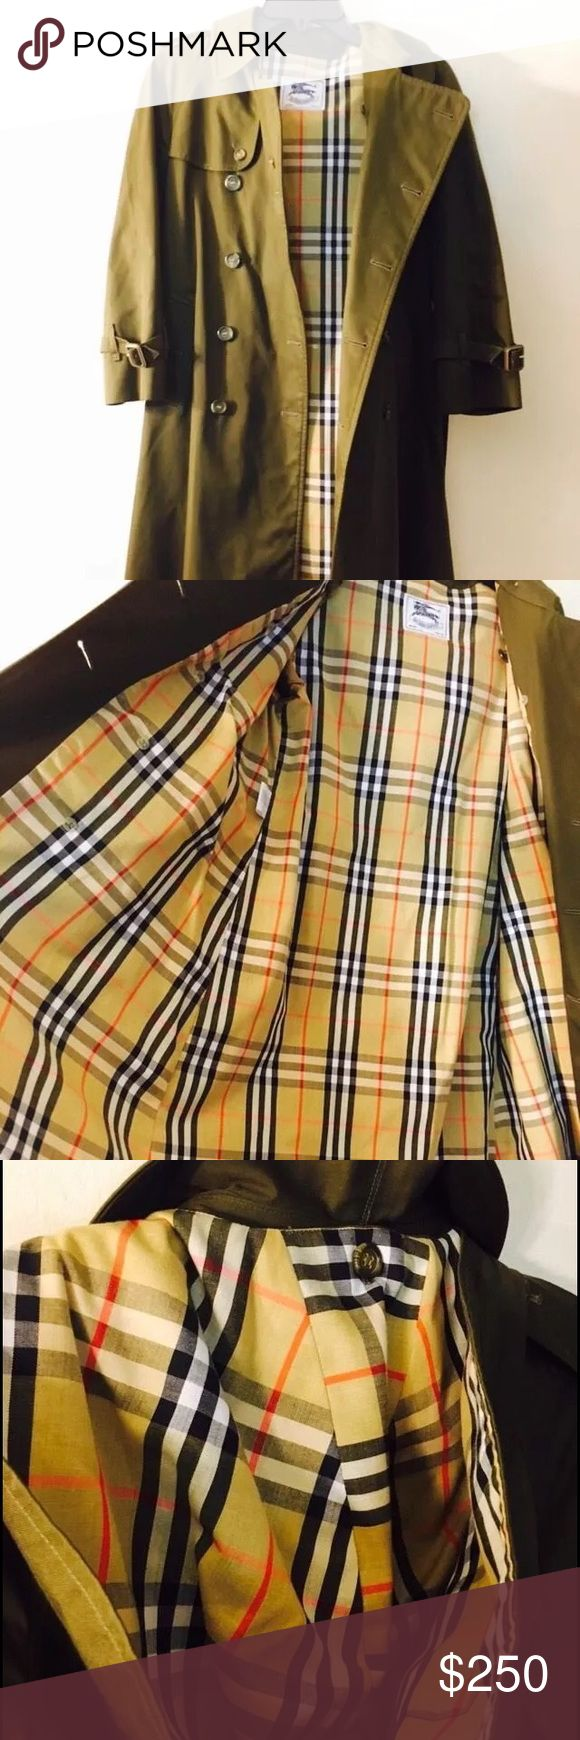 """NWOT BURBERRY GIRLS TRENCH COAT AGES 11/12 Fits Women's Petite.                                     16 inches across for the Chest measurement with the buttons closed.  100% AUTHENTIC BURBERRY CLASSIC COAT!! APPROXIMATE MEASUREMENT SHOULDER TO SHOULDER 19"""". This coat is used but still in mint condition. The hood is removeable, and the belt is still here, in mint condition (see photos) The coat measures 38in long. The sleeve, measuring from the bottom of the arm pit is 13 inches. It is a dark…"""